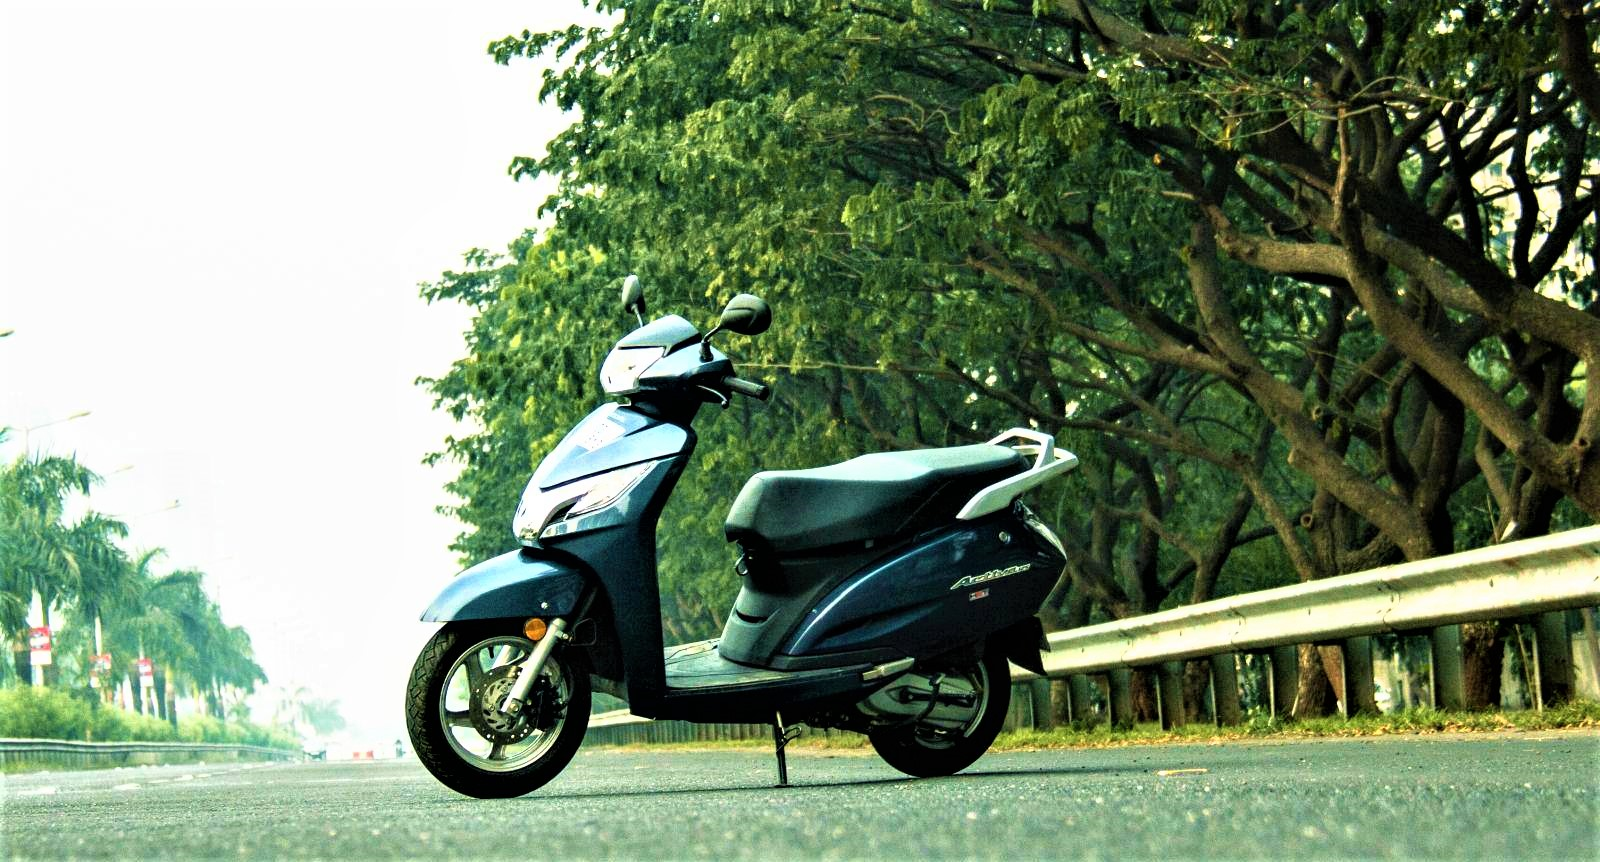 Bike Rent in Udaipur – Rent/Hire A Bike/Scooty in Udaipur City